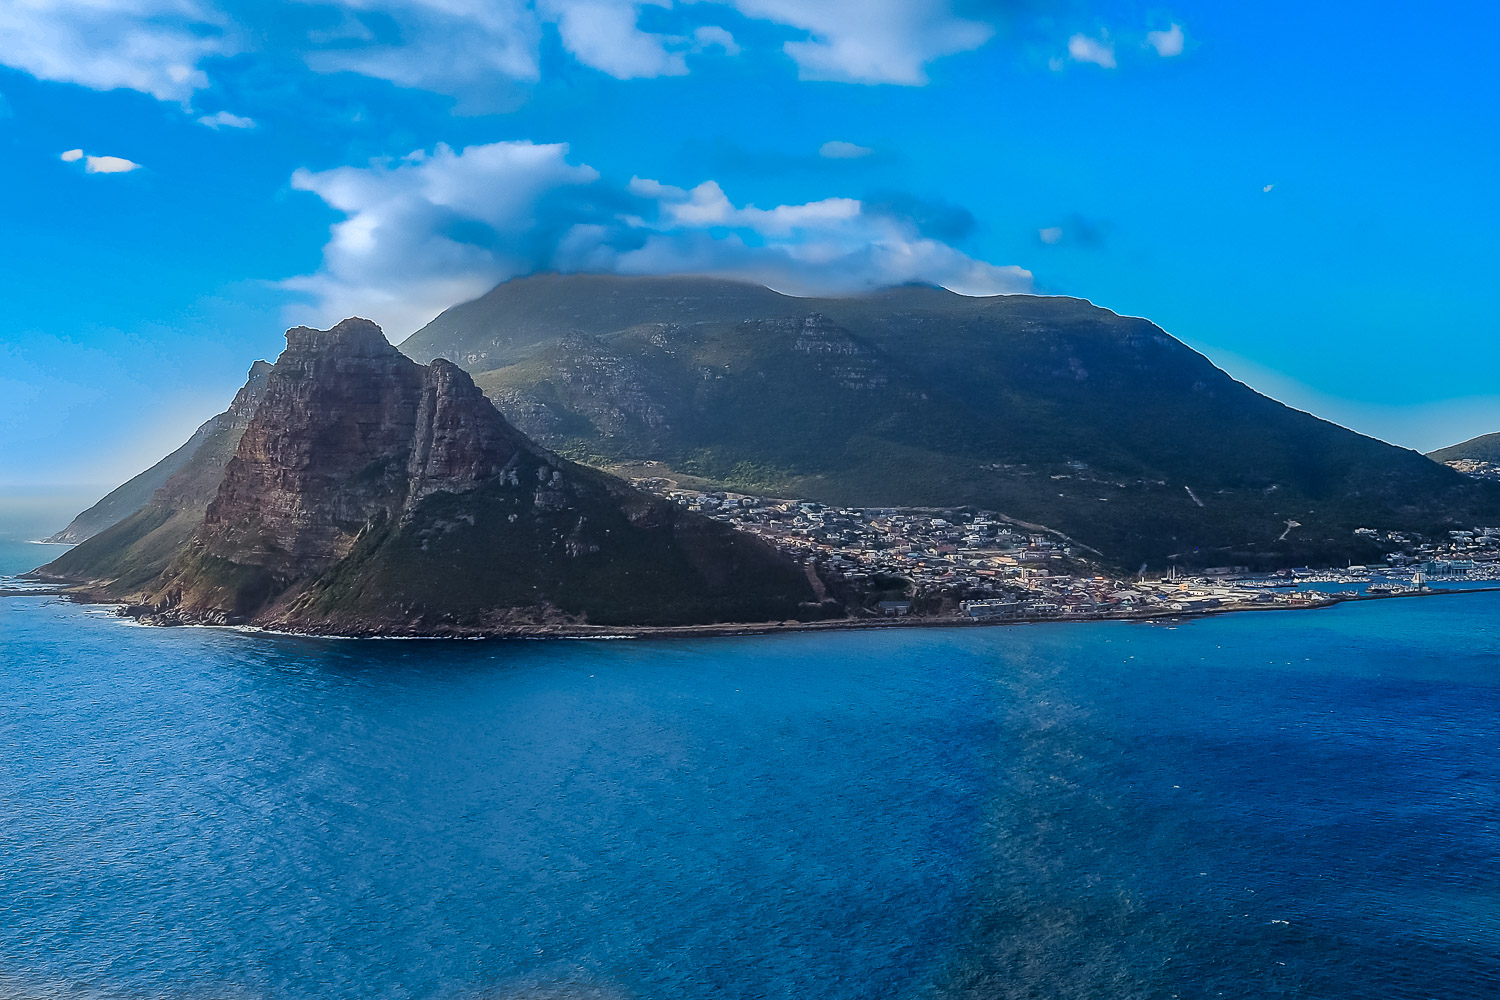 View at Chapman's Peak, South Africa.